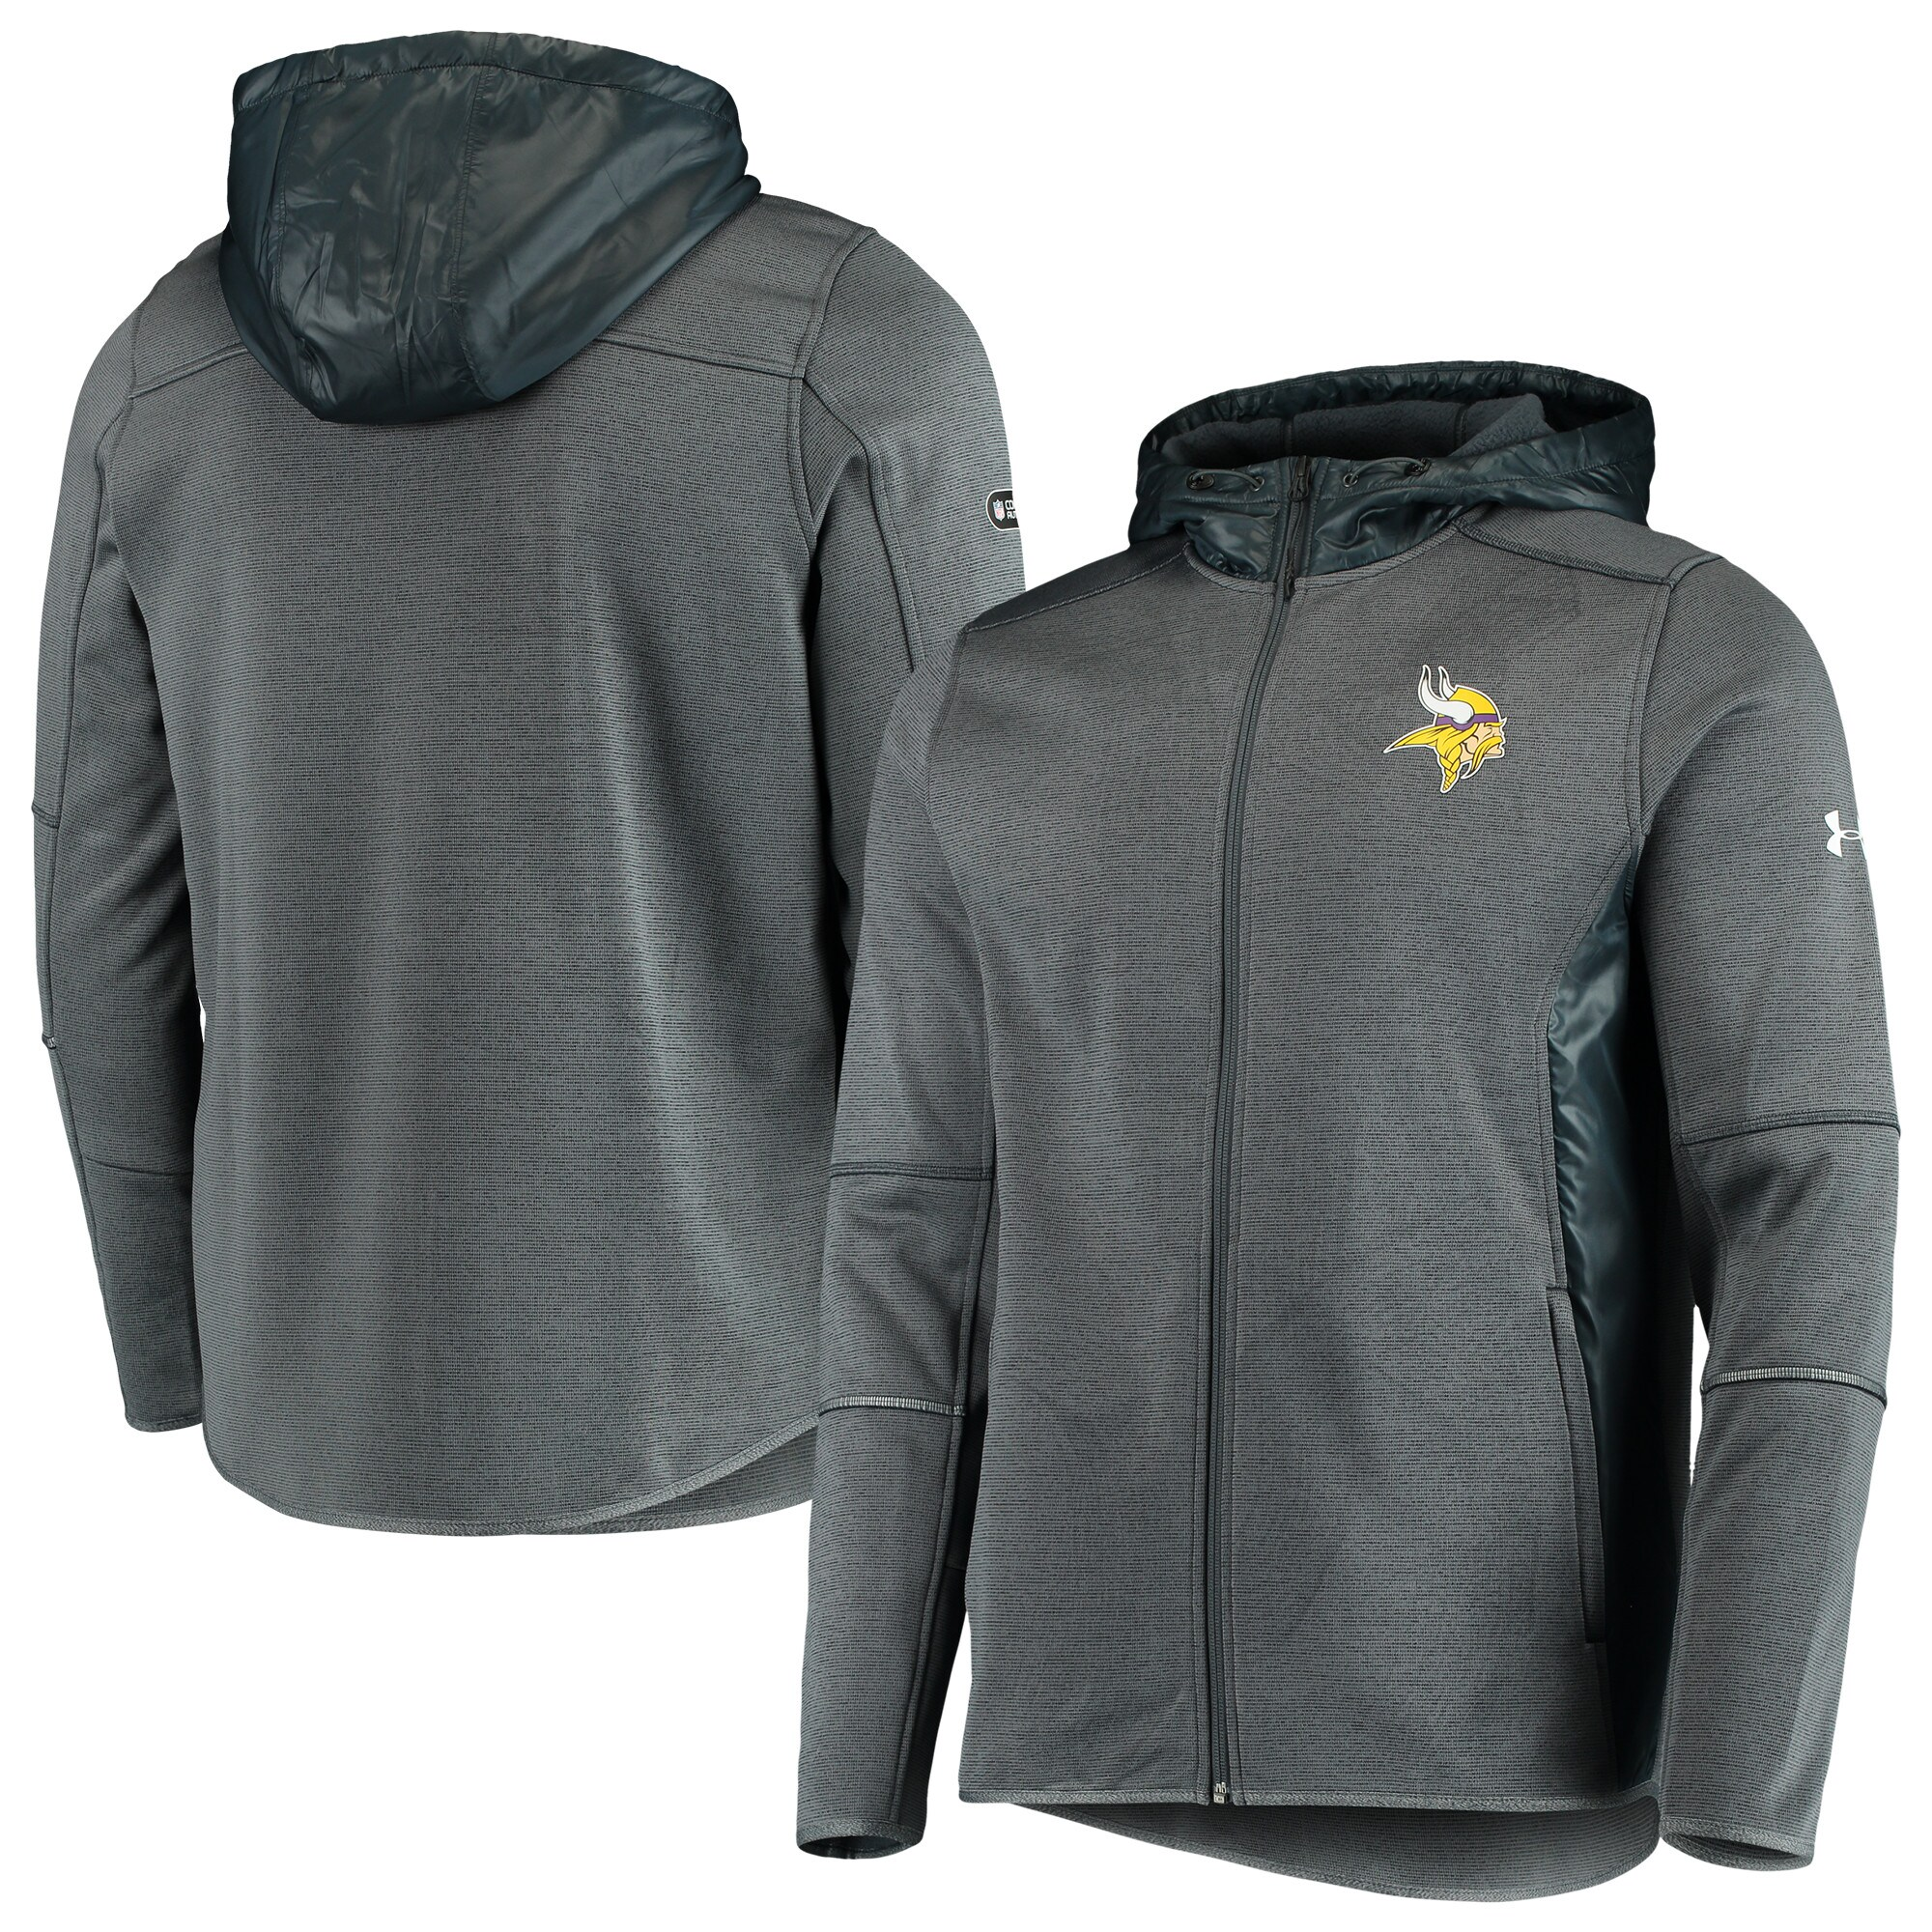 Minnesota Vikings Under Armour Combine Authentic Full-Zip Swacket - Charcoal